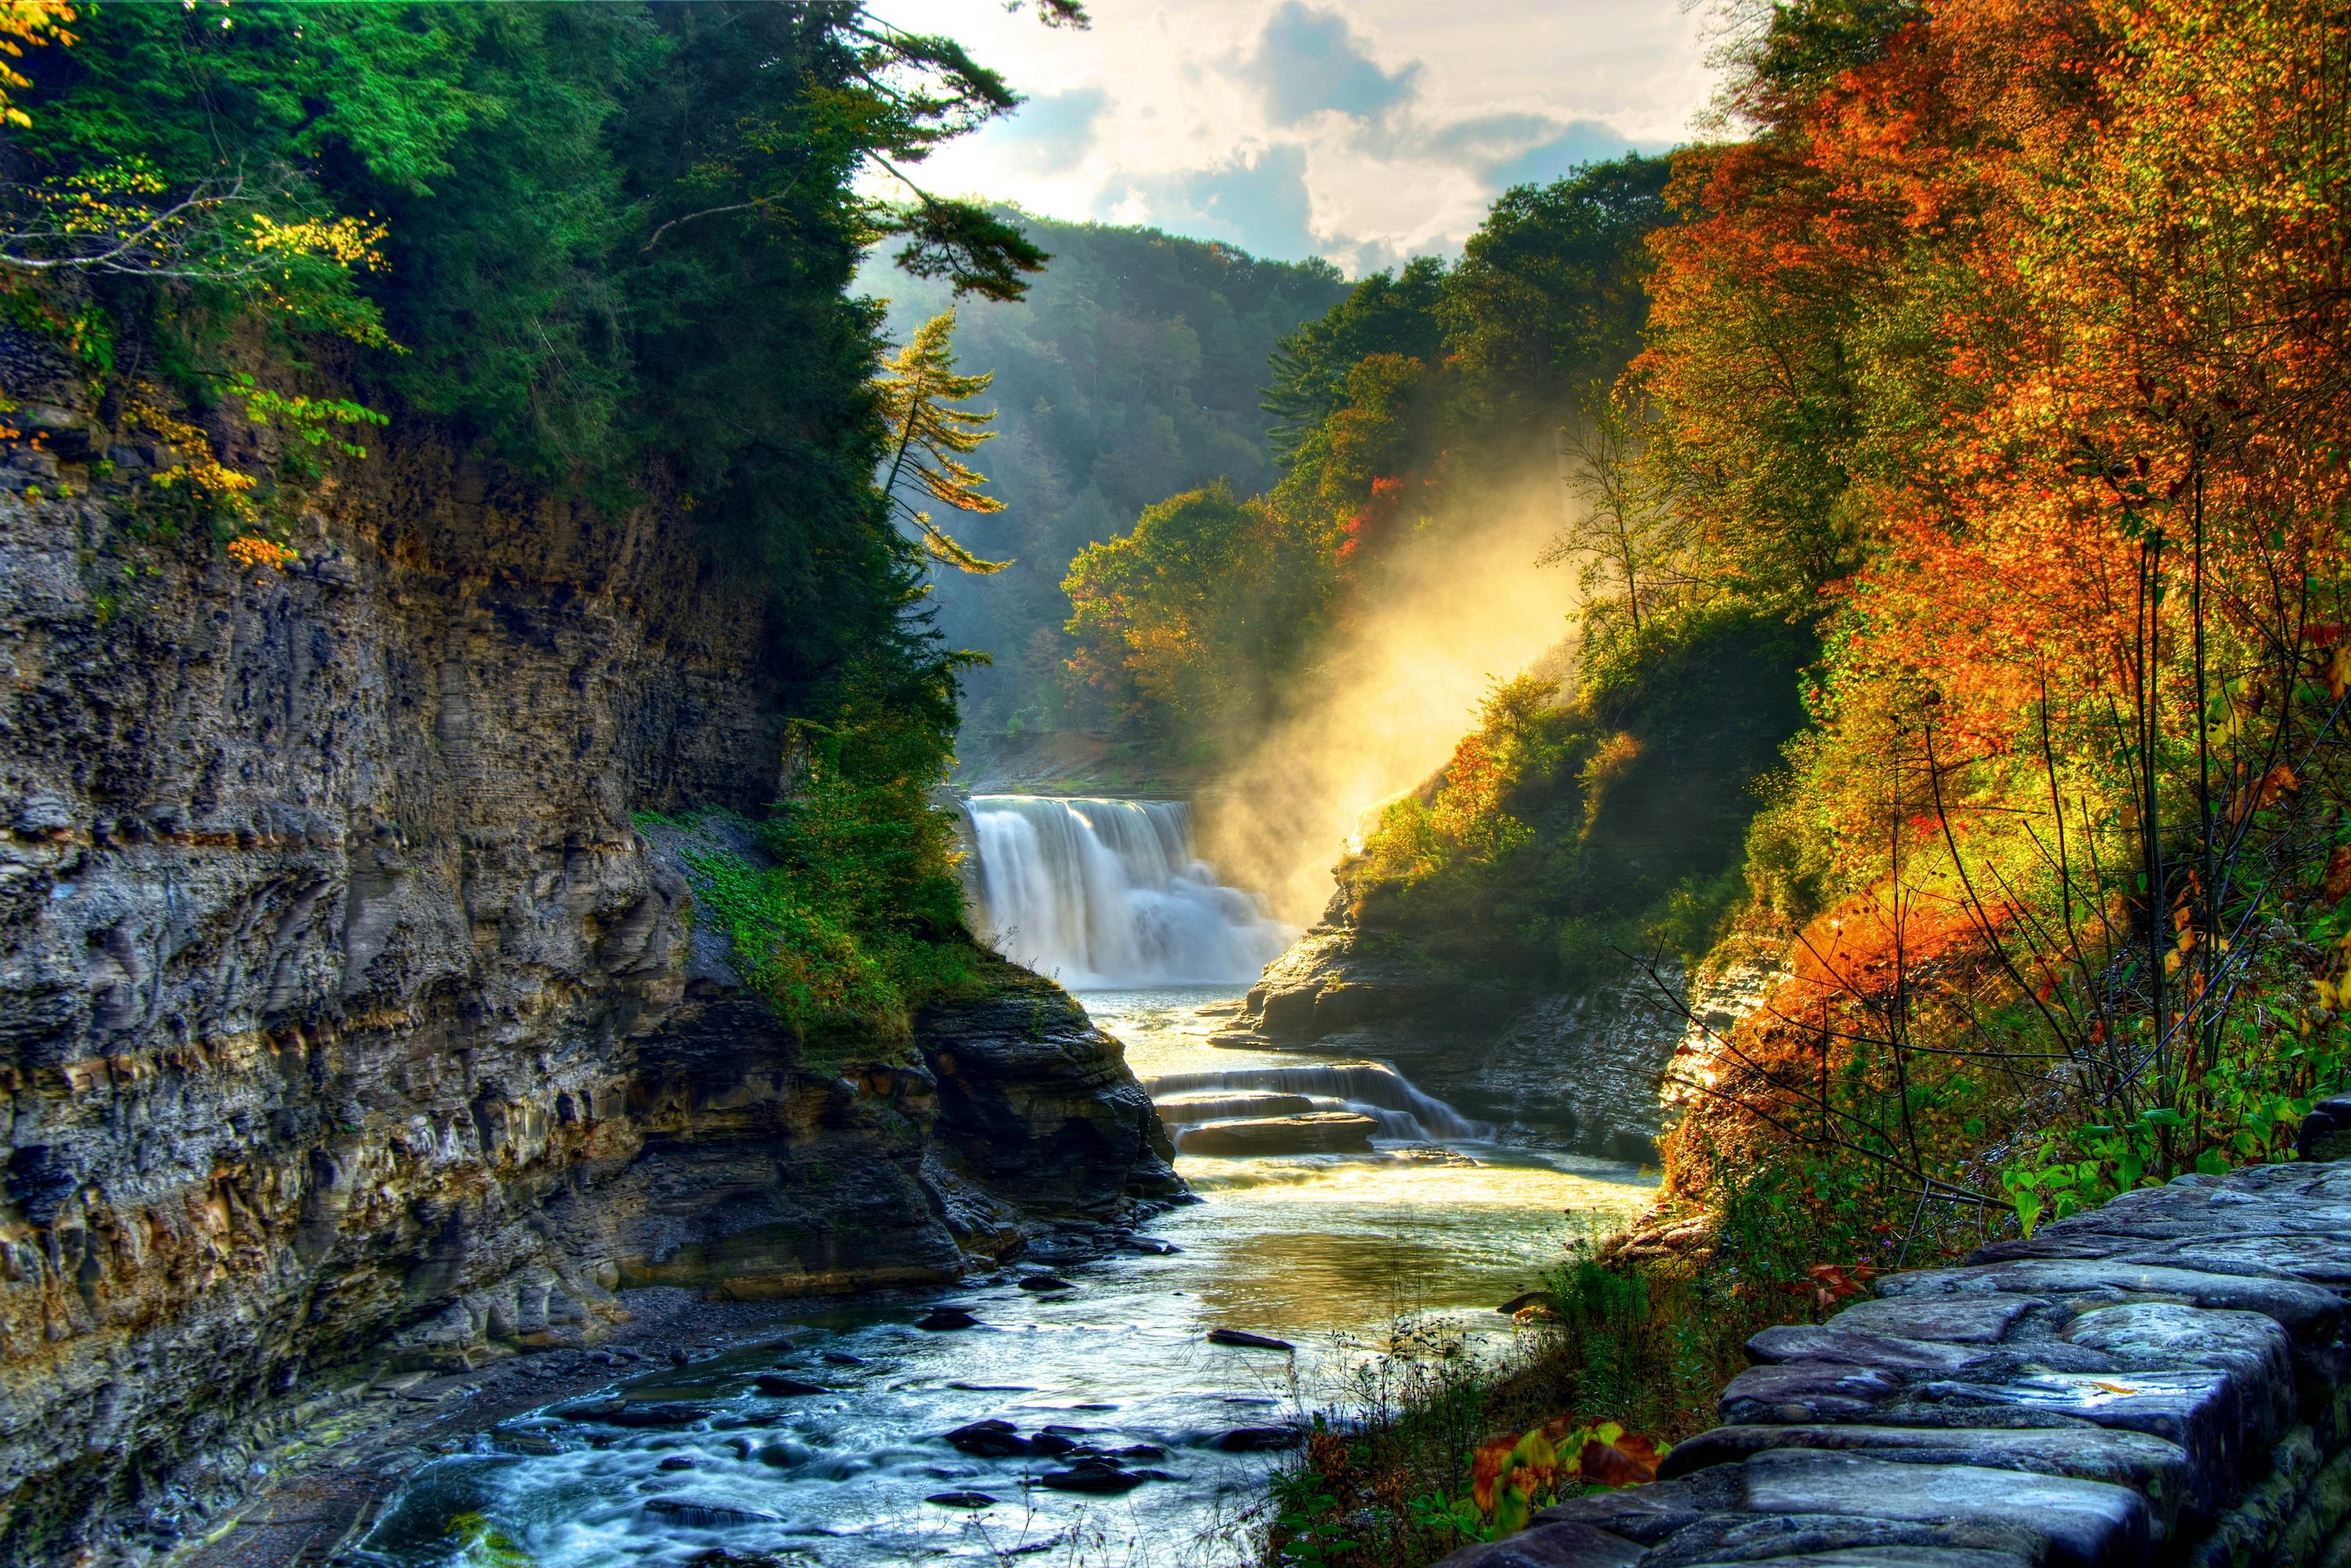 landscape nature tree forest woods autumn river waterfall